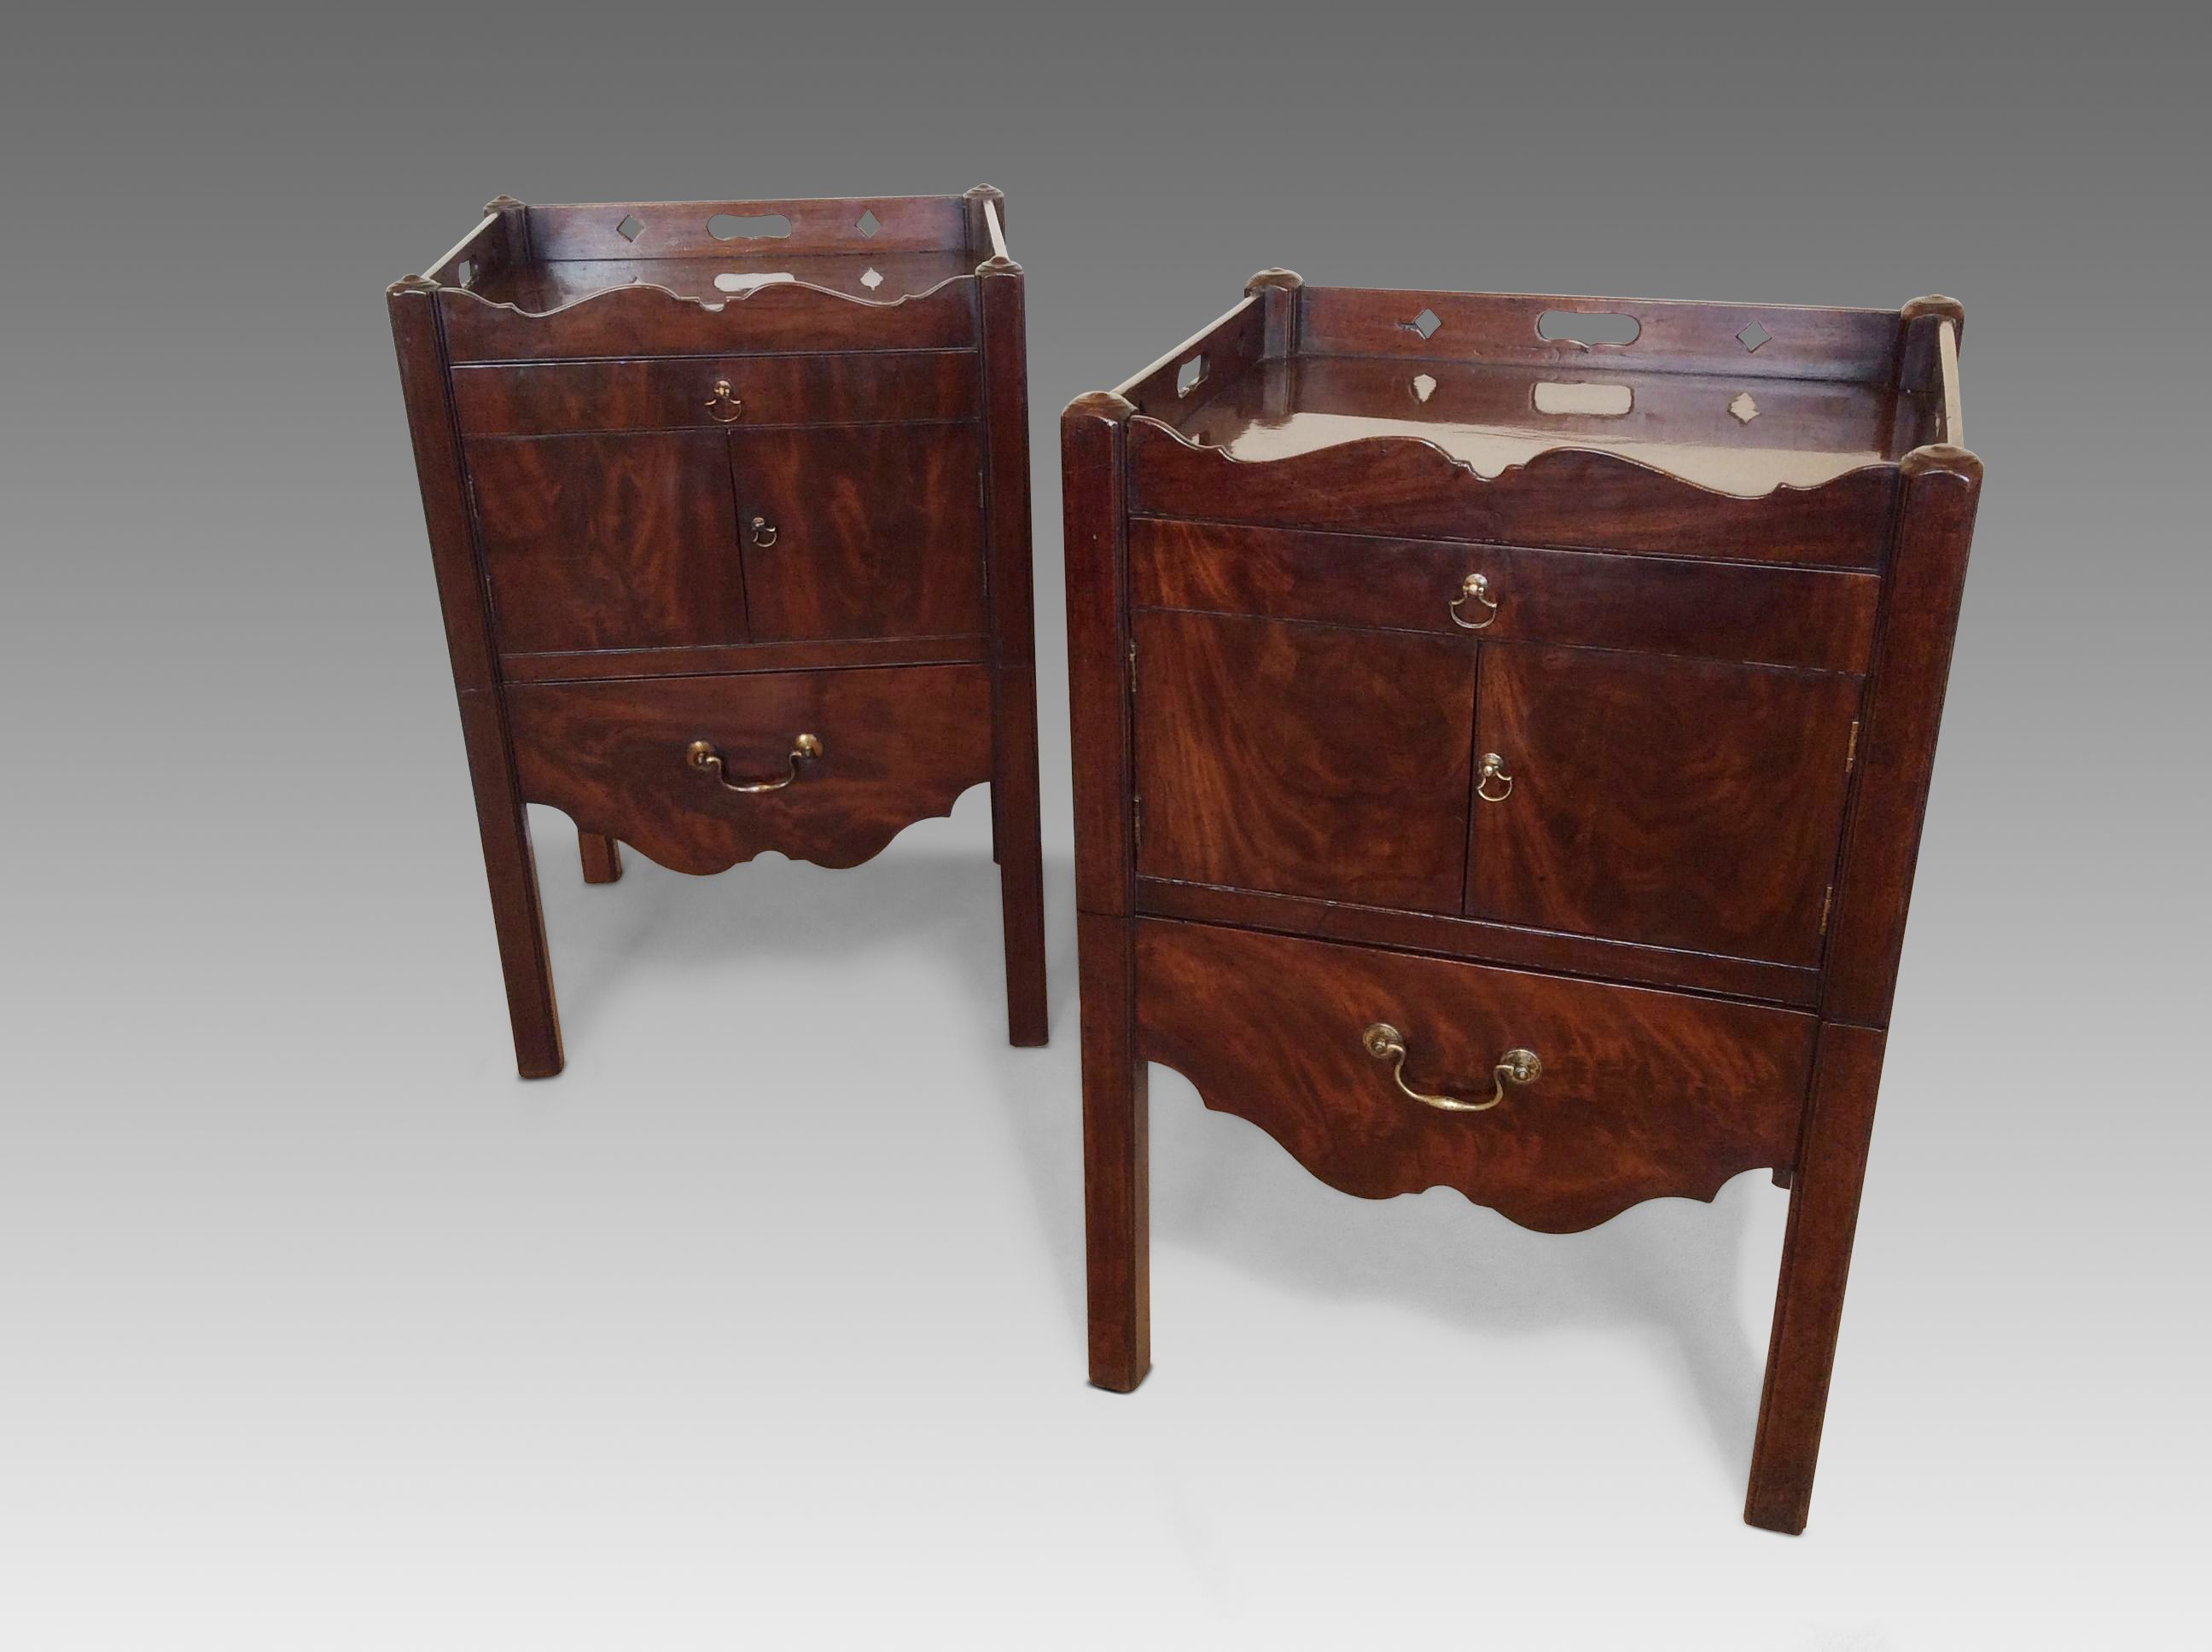 Antique Bedside Tables Pair Antique Bedside Tables Richard Gardner Antiques